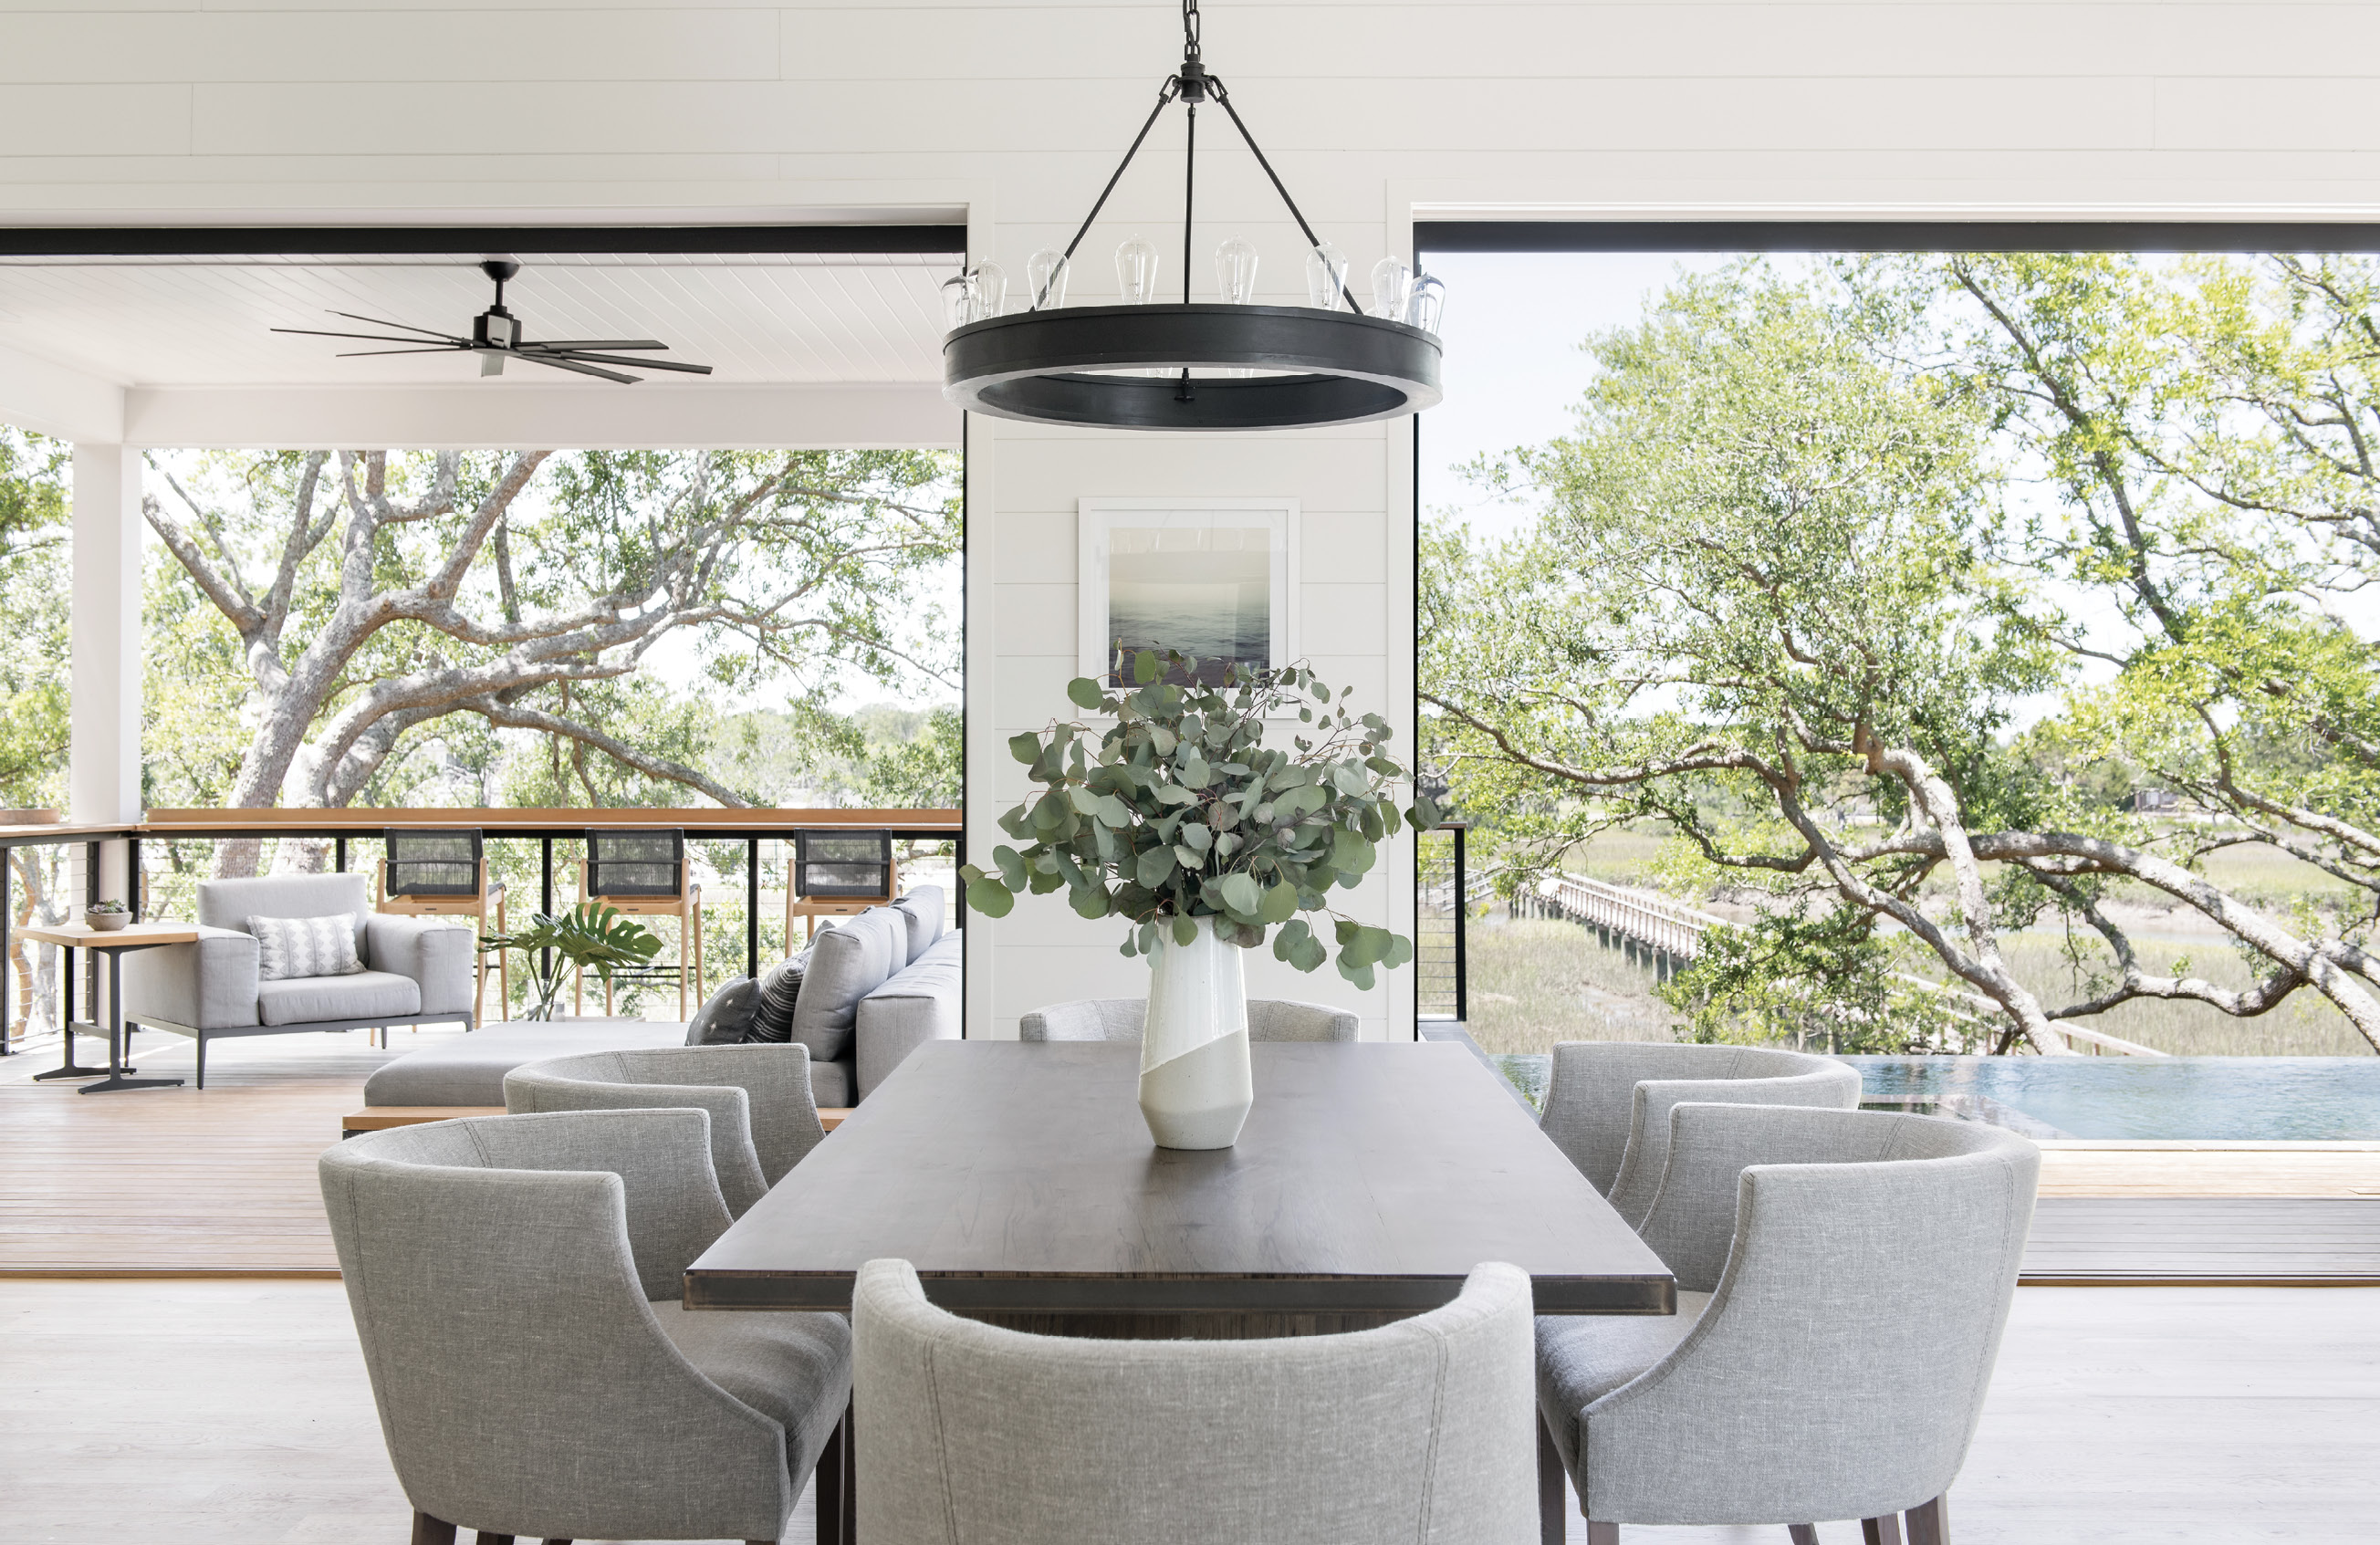 """On A Limb: """"From the start, my clear goal was to bring the outdoors in for an open-living, tree-house concept,"""" explains Melissa Lenox, who designed the interiors of the home. """"All main living spaces and the master were intended to bring the unique and beautiful Lowcountry nature indoors."""" She chose neutral colors for the furniture, such as the HomeNature sectional and Verellen dining chairs, and incorporated soft marsh hues in accent pieces like paintings, rugs, and pillows."""